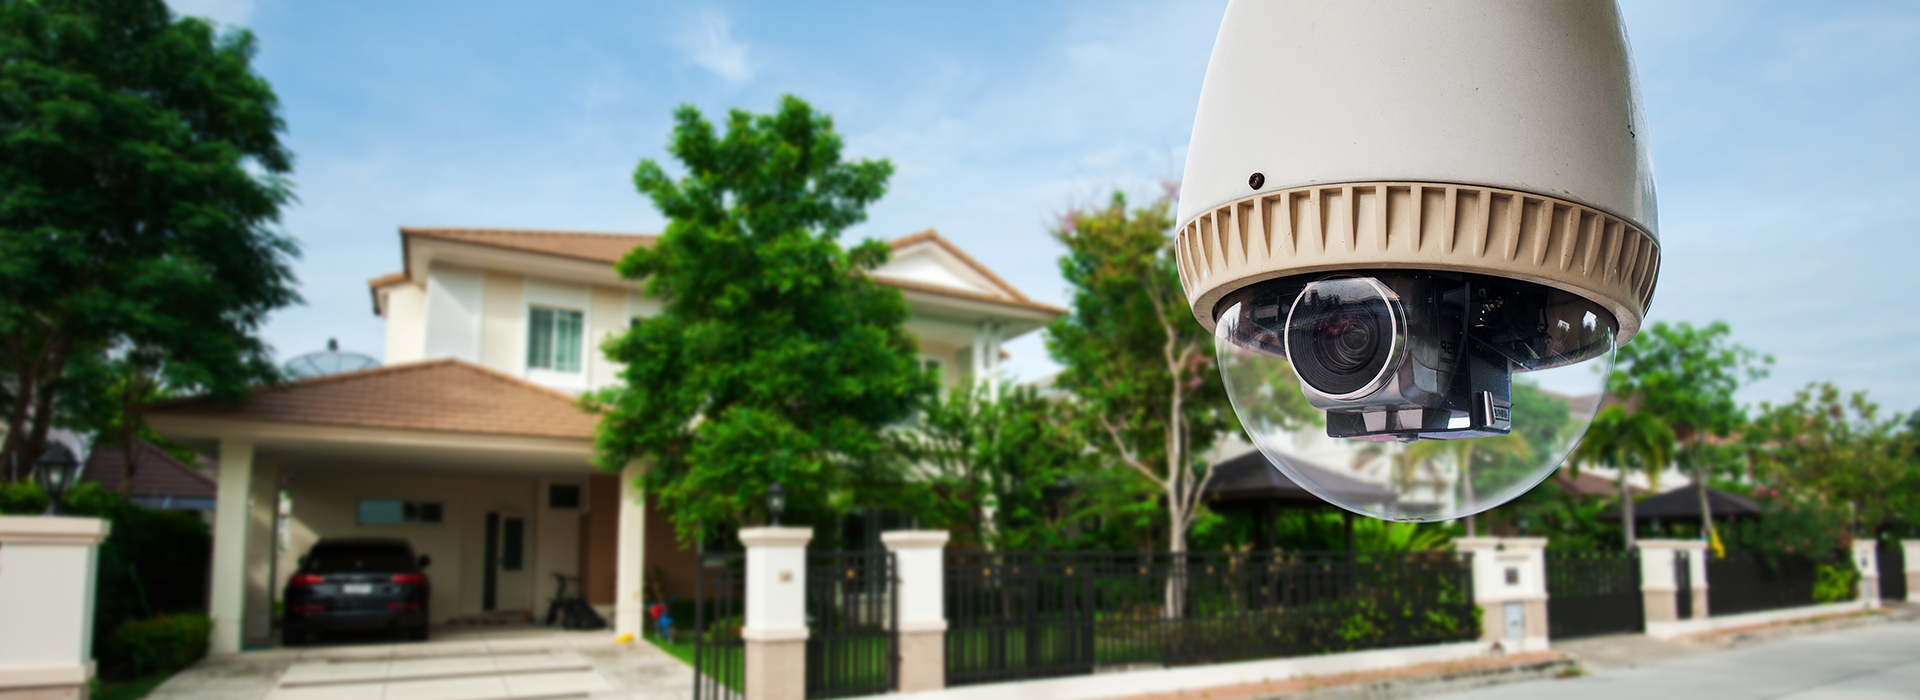 Home Security2